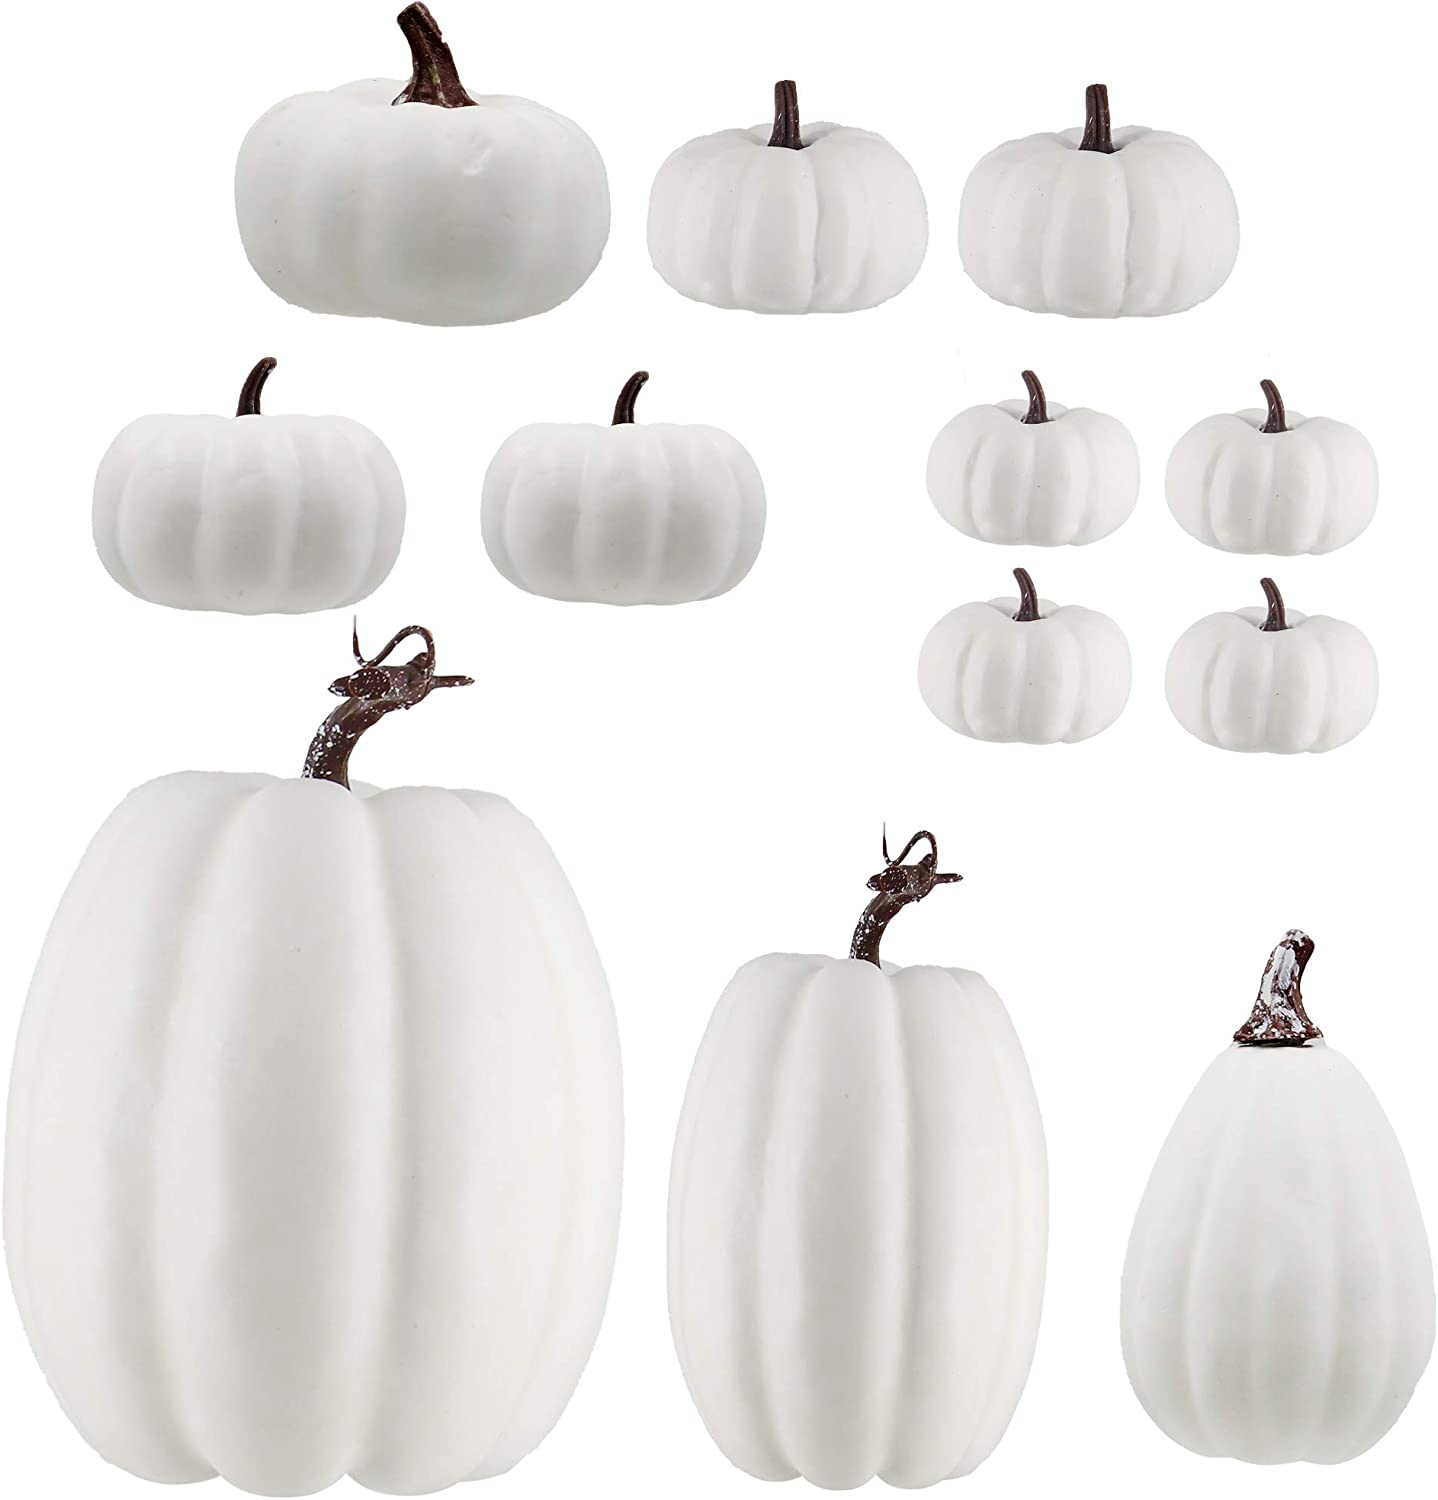 winemana 12 Pack Thanksgiving White Pumpkin Decorations, 6 Sizes Artificial Pumpkins Fall Autumn Decor for Fireplace Kitchen Thanksgiving Party Harvest Day